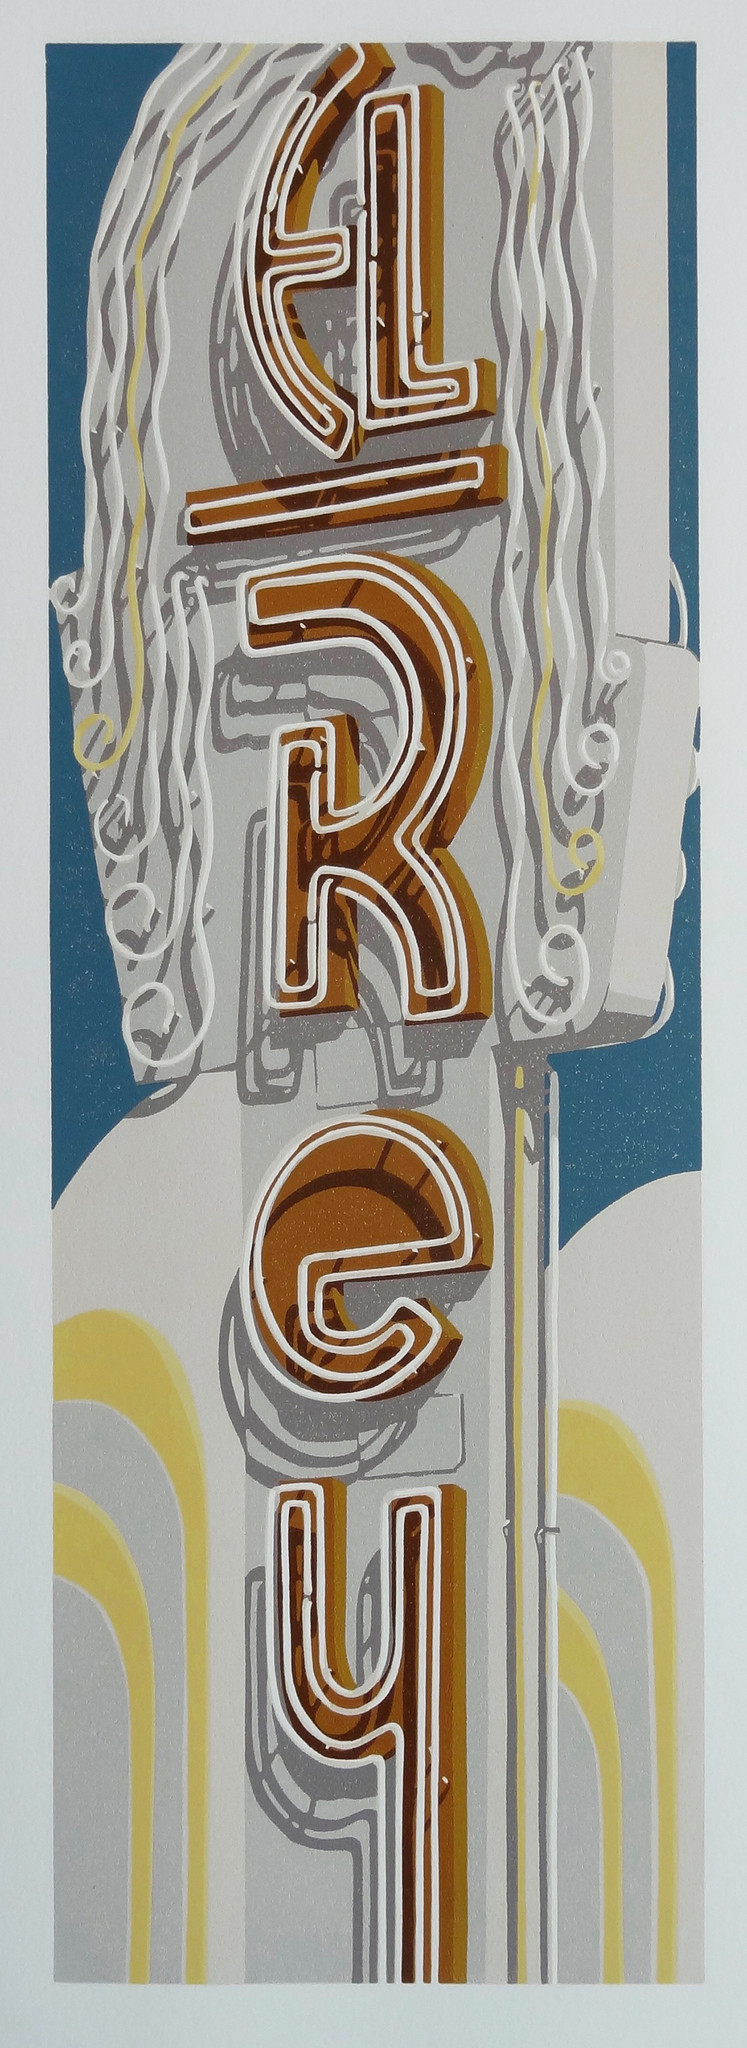 """Dave Lefner's """"The El Rey Theater,"""" 2017. Reduction linocut in nine colors, 24 inches by 8 inches."""